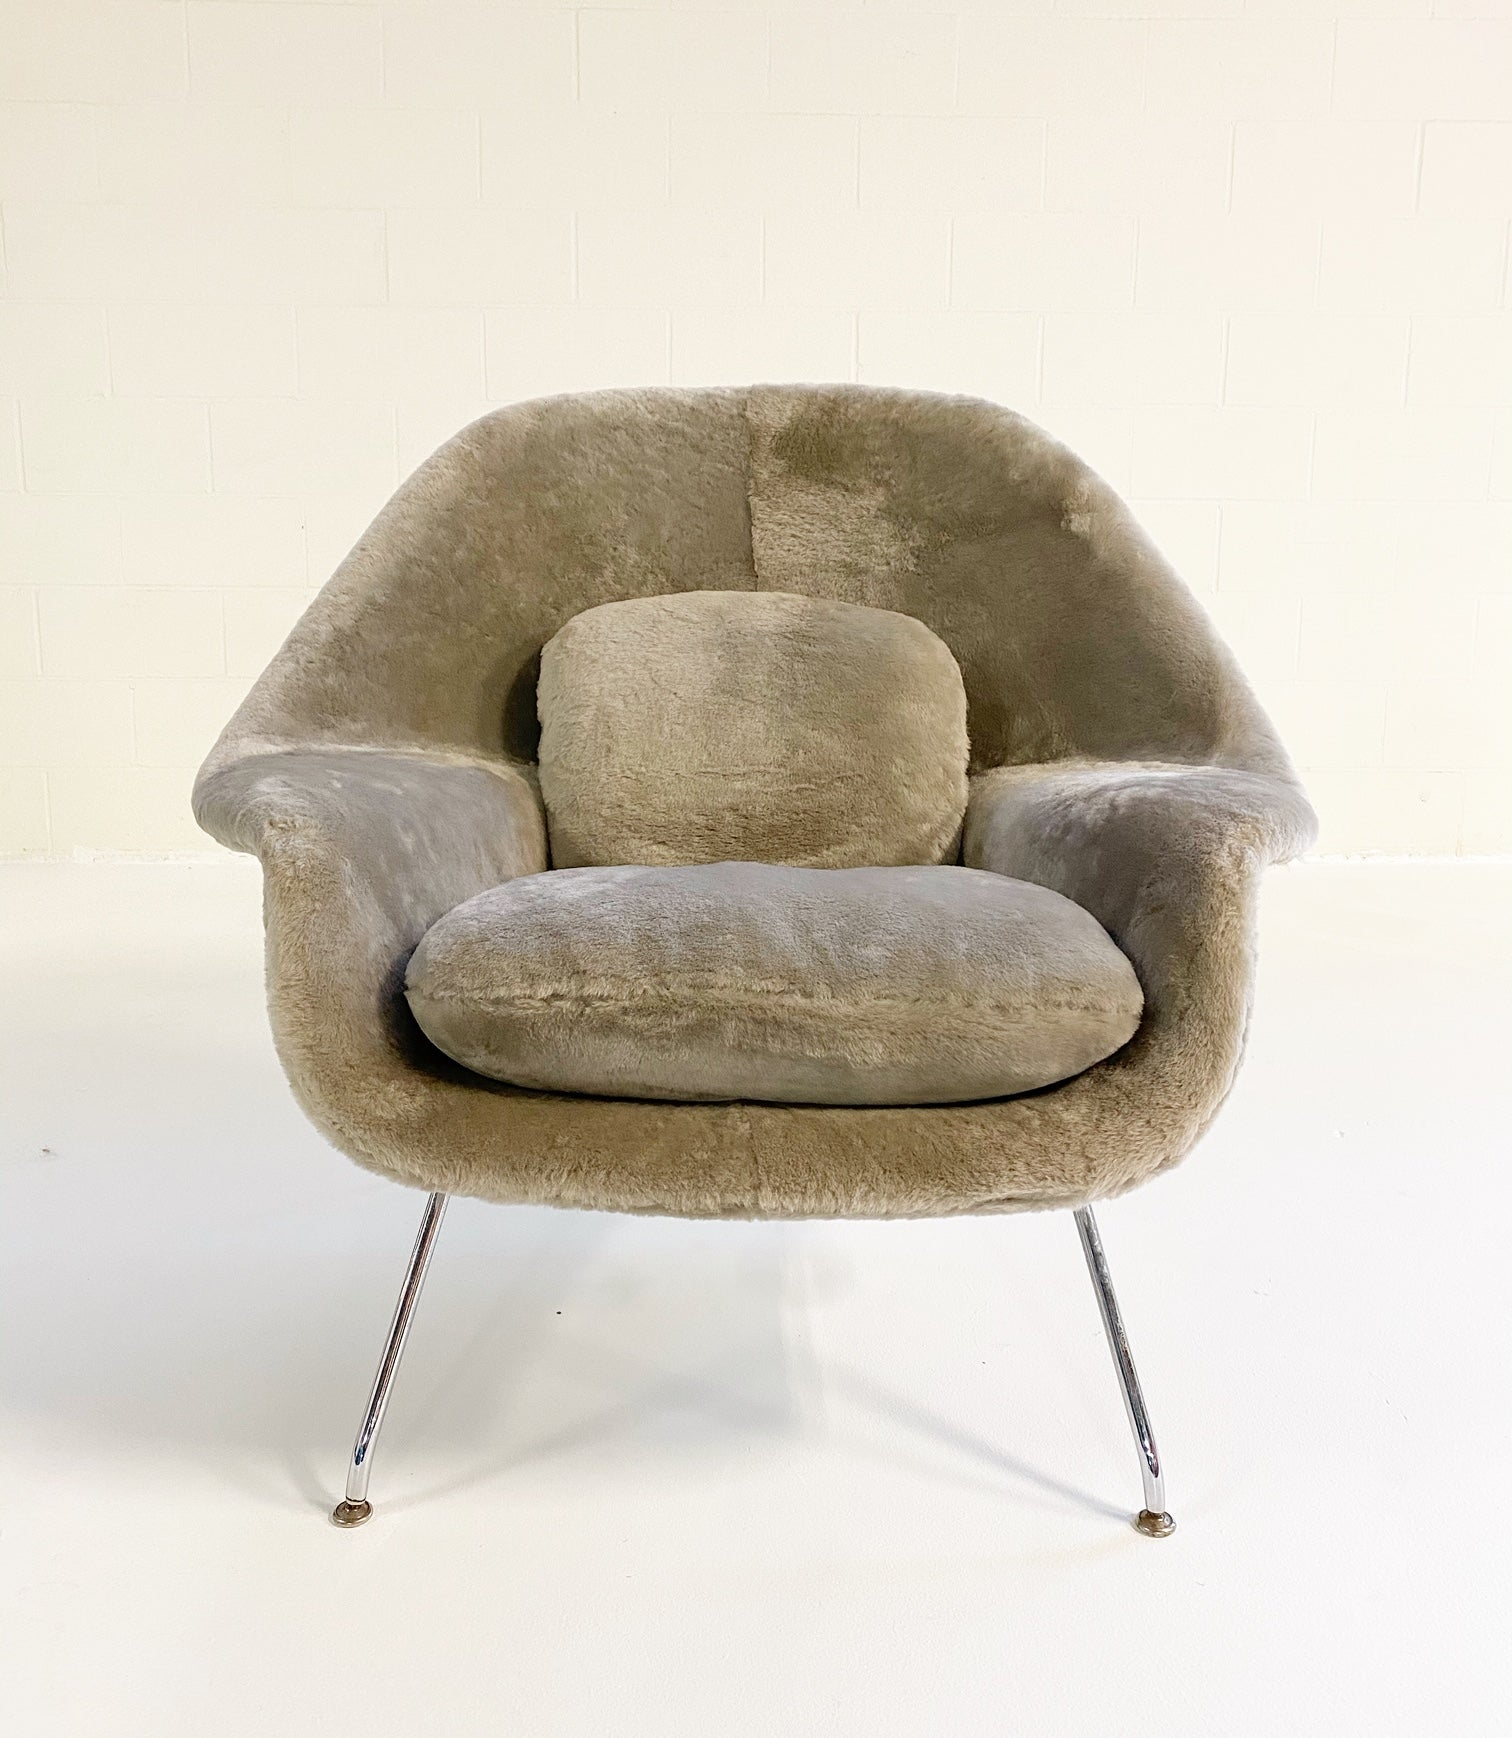 Bespoke Womb Chair and Ottoman in Shearling